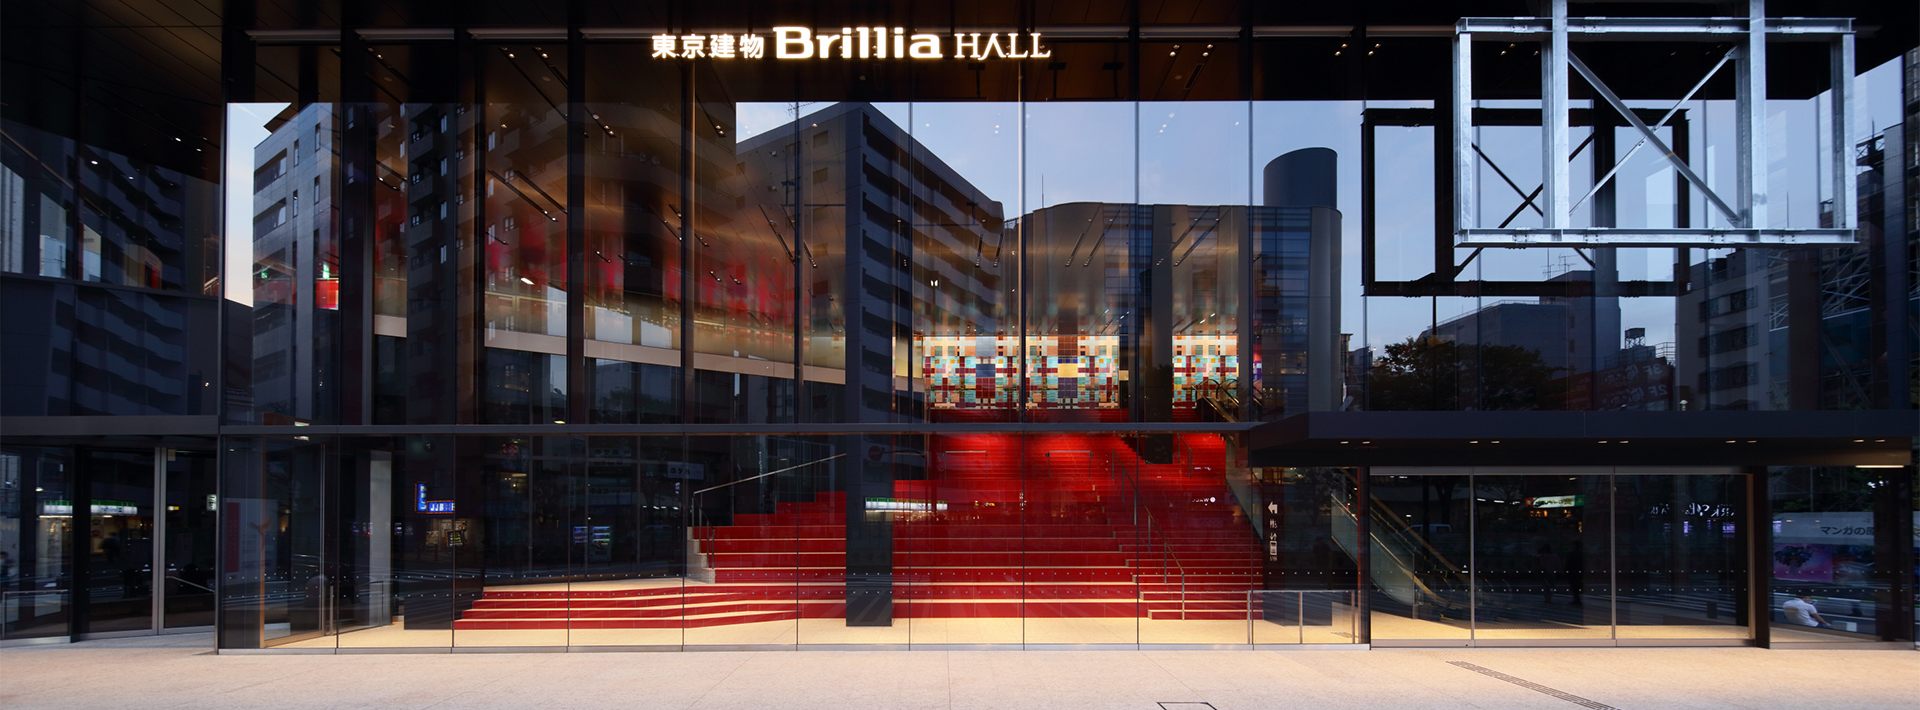 東京建物 Brillia HALL